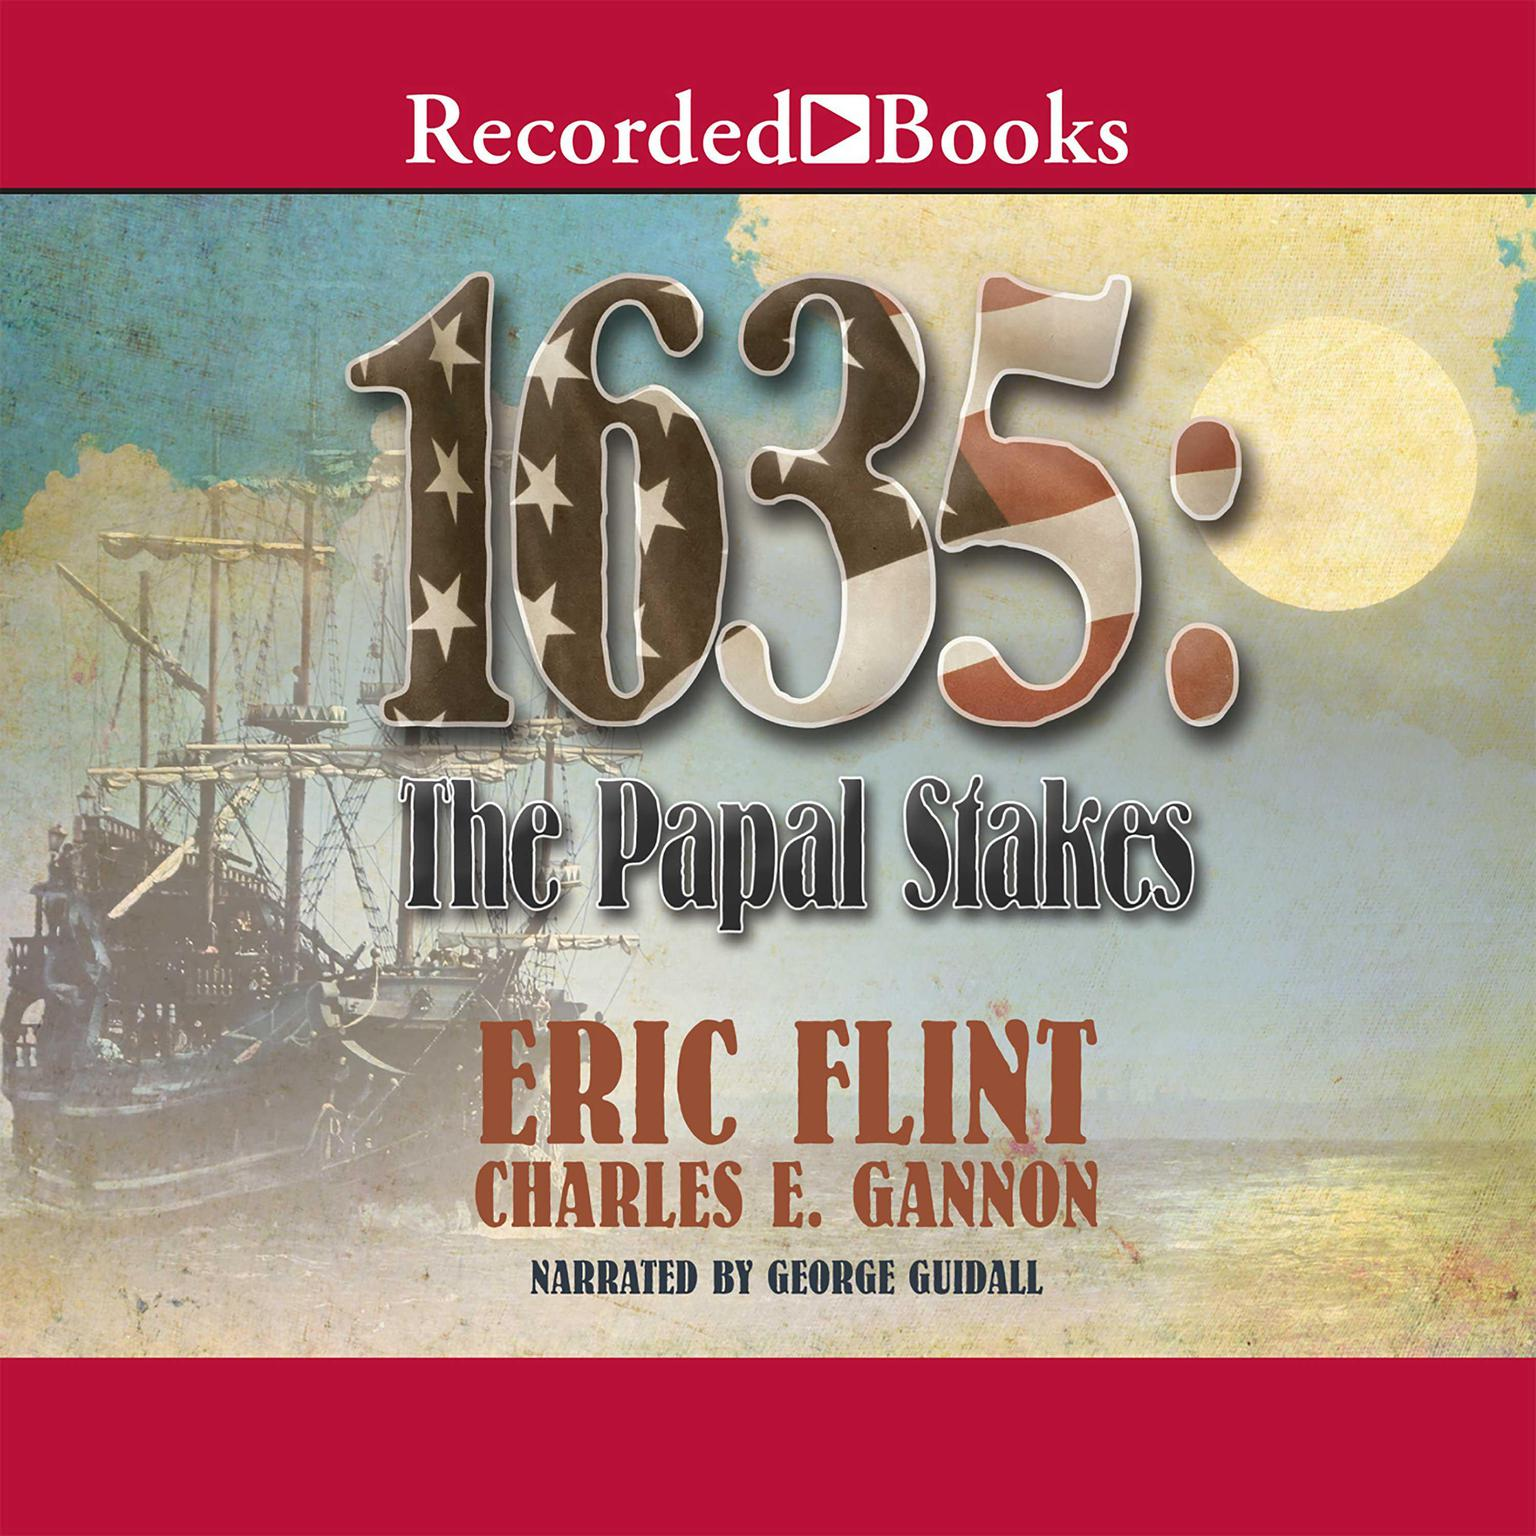 Printable 1635: The Papal Stakes Audiobook Cover Art